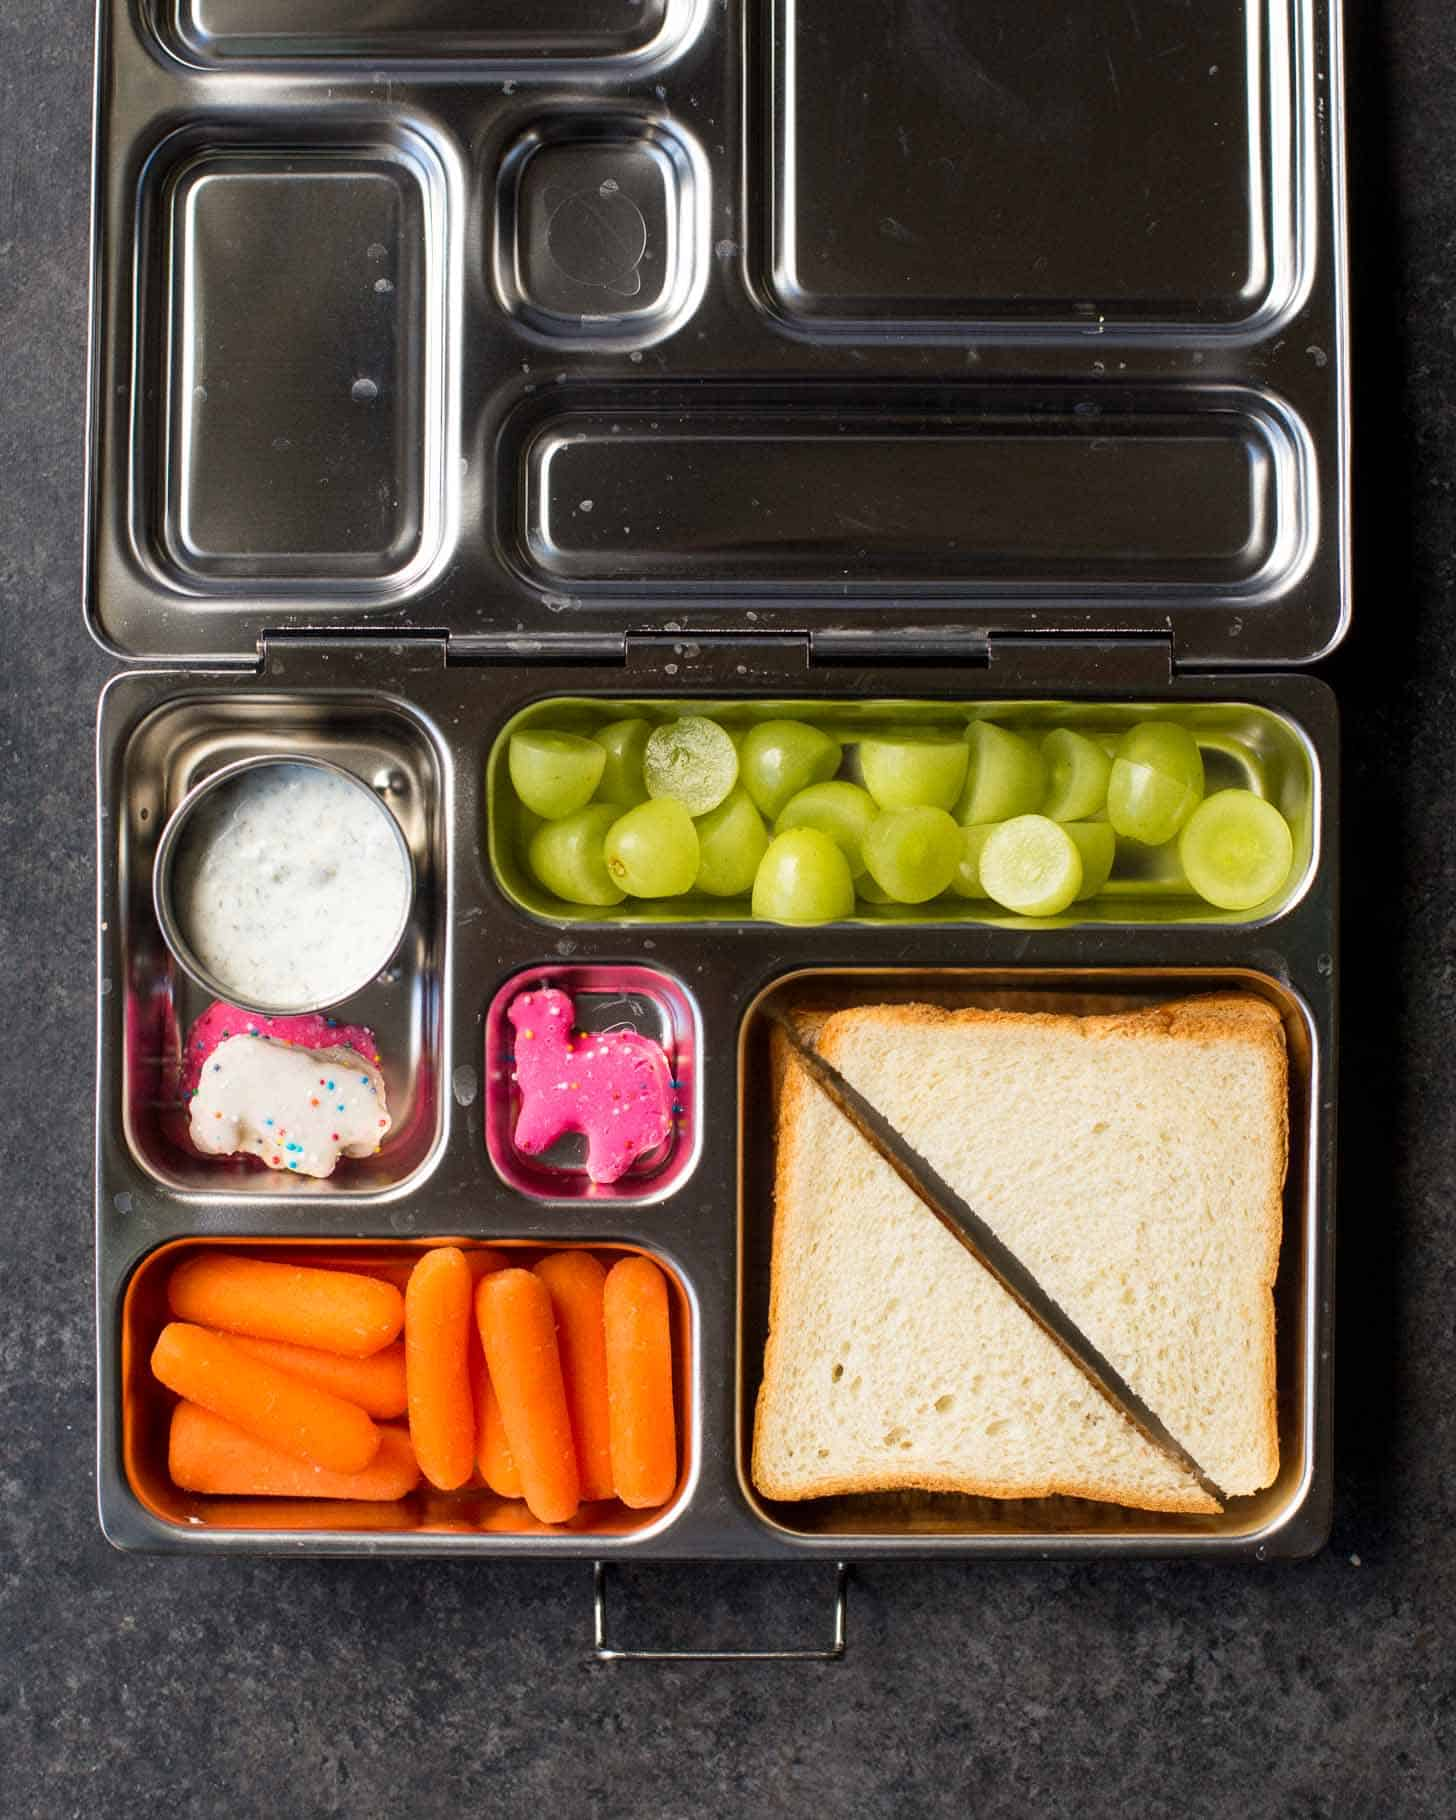 Planetbox Rover packed with Classic Lunch